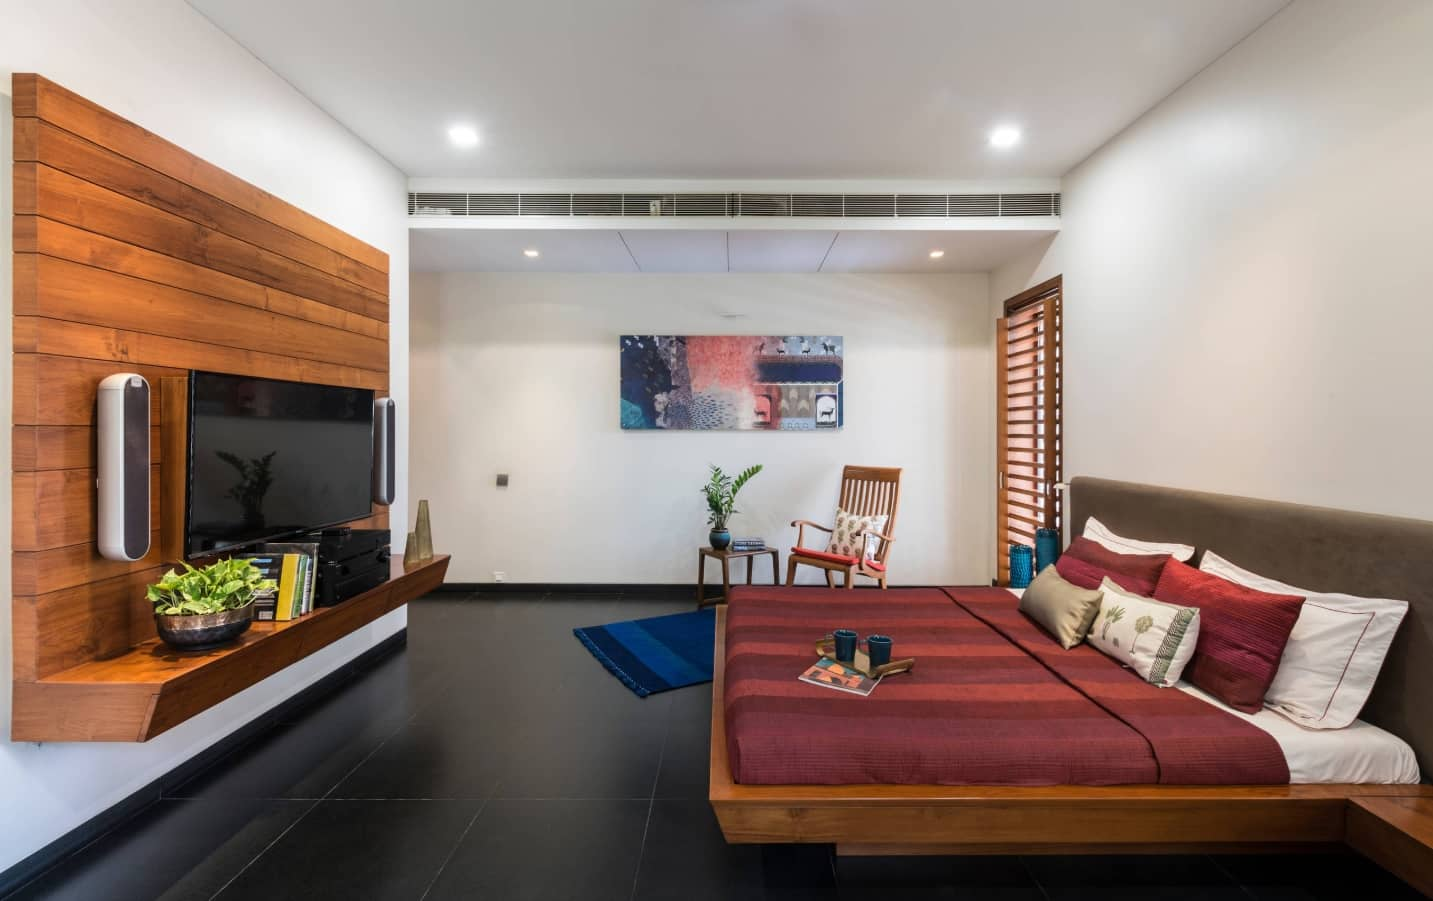 Simple Bedroom Decorating Ideas To Make Your Space Stand Out. Comfortable seaside space styled room with hovering platform bed